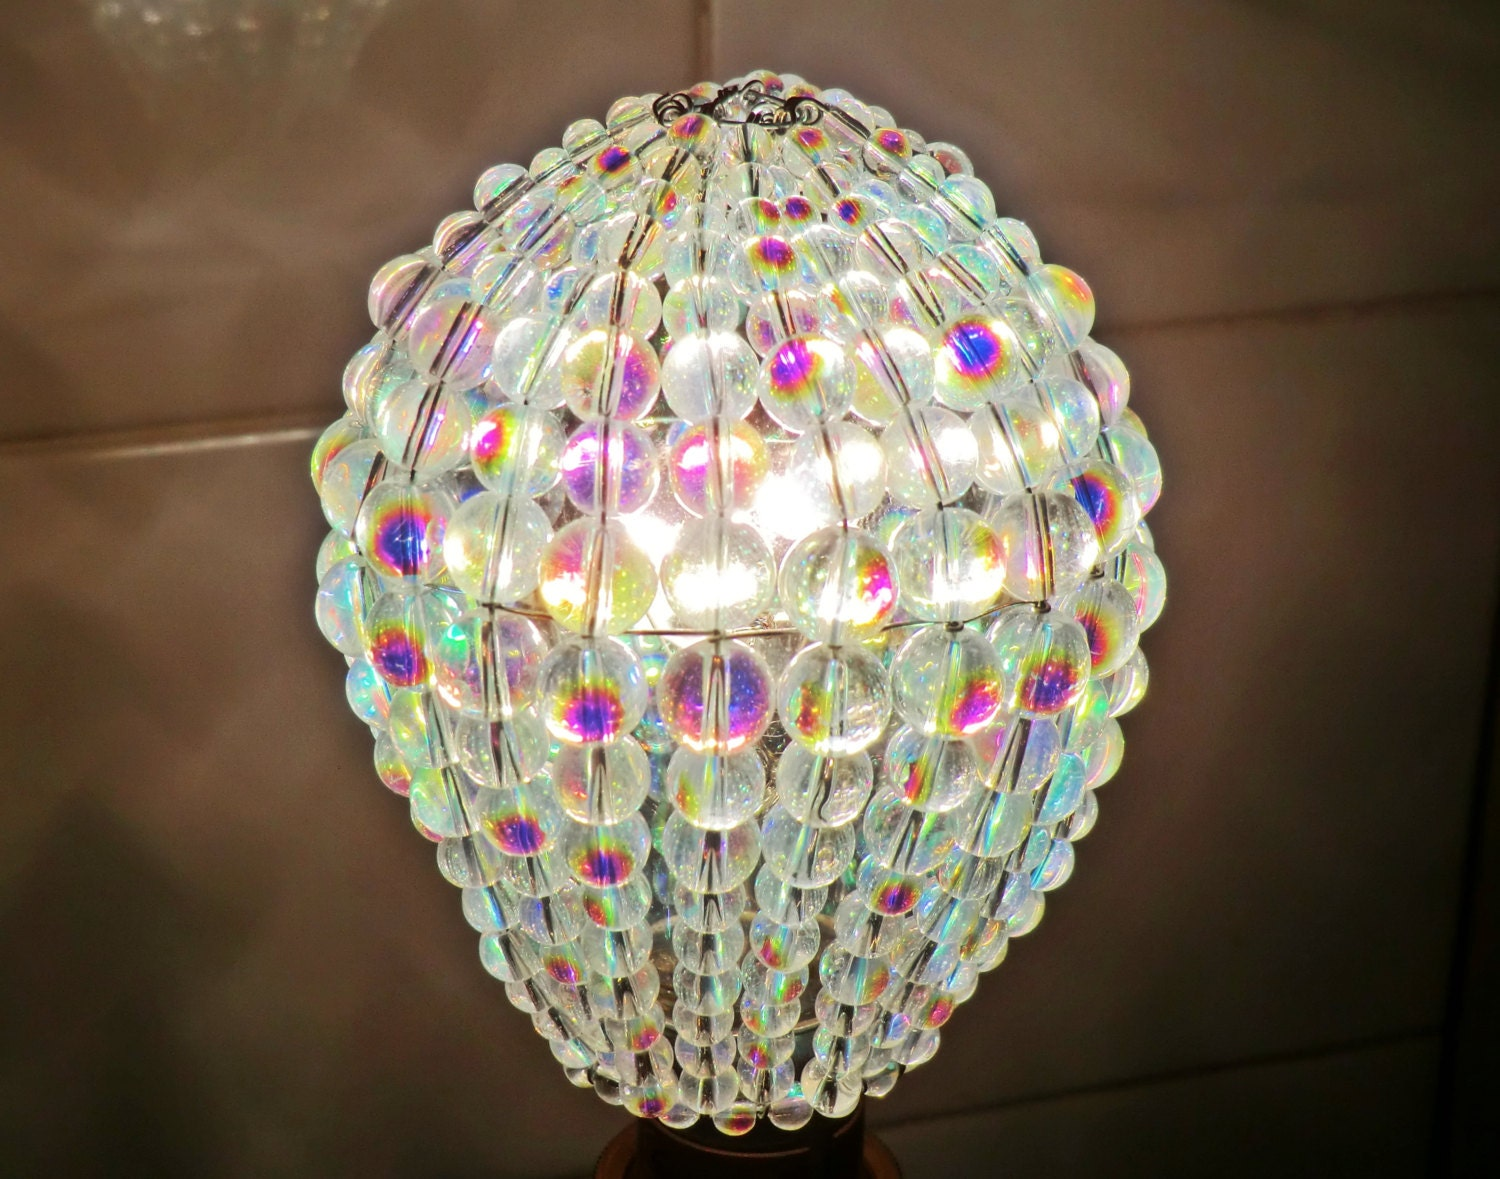 Crystal chandelier inspired aurora borealis ab glass lightbulb gls crystal chandelier inspired aurora borealis ab glass lightbulb gls bulb cover sleeve pendant lamp better than lamp shade light drops beads arubaitofo Image collections